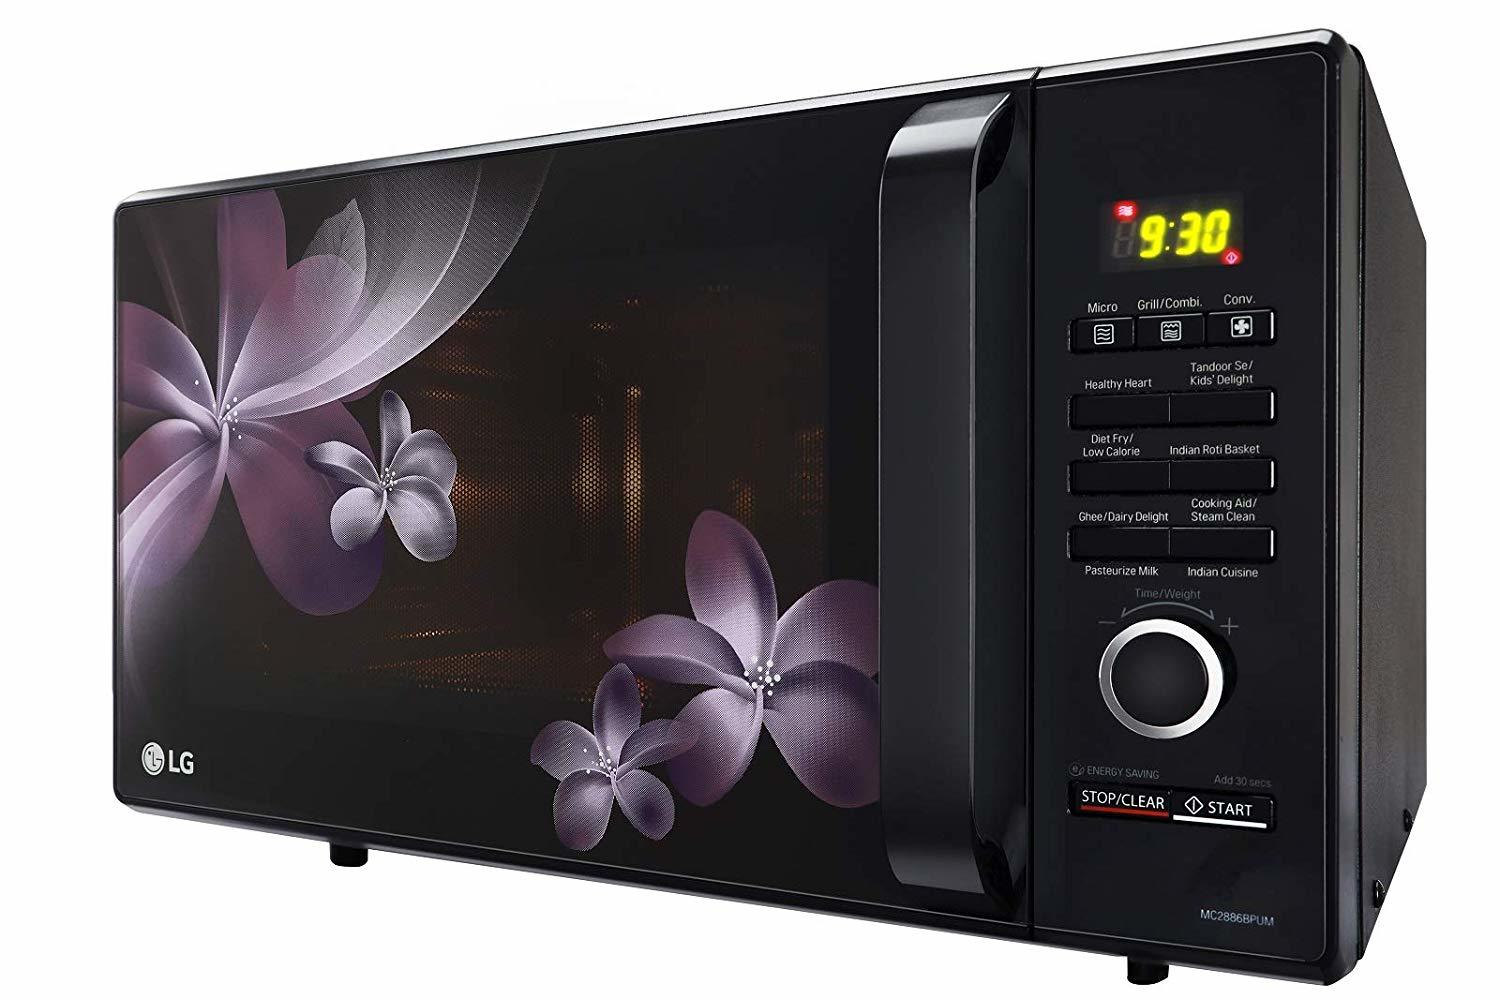 LG 28 L Convection Microwave Oven (MC2886BPUM, Black)